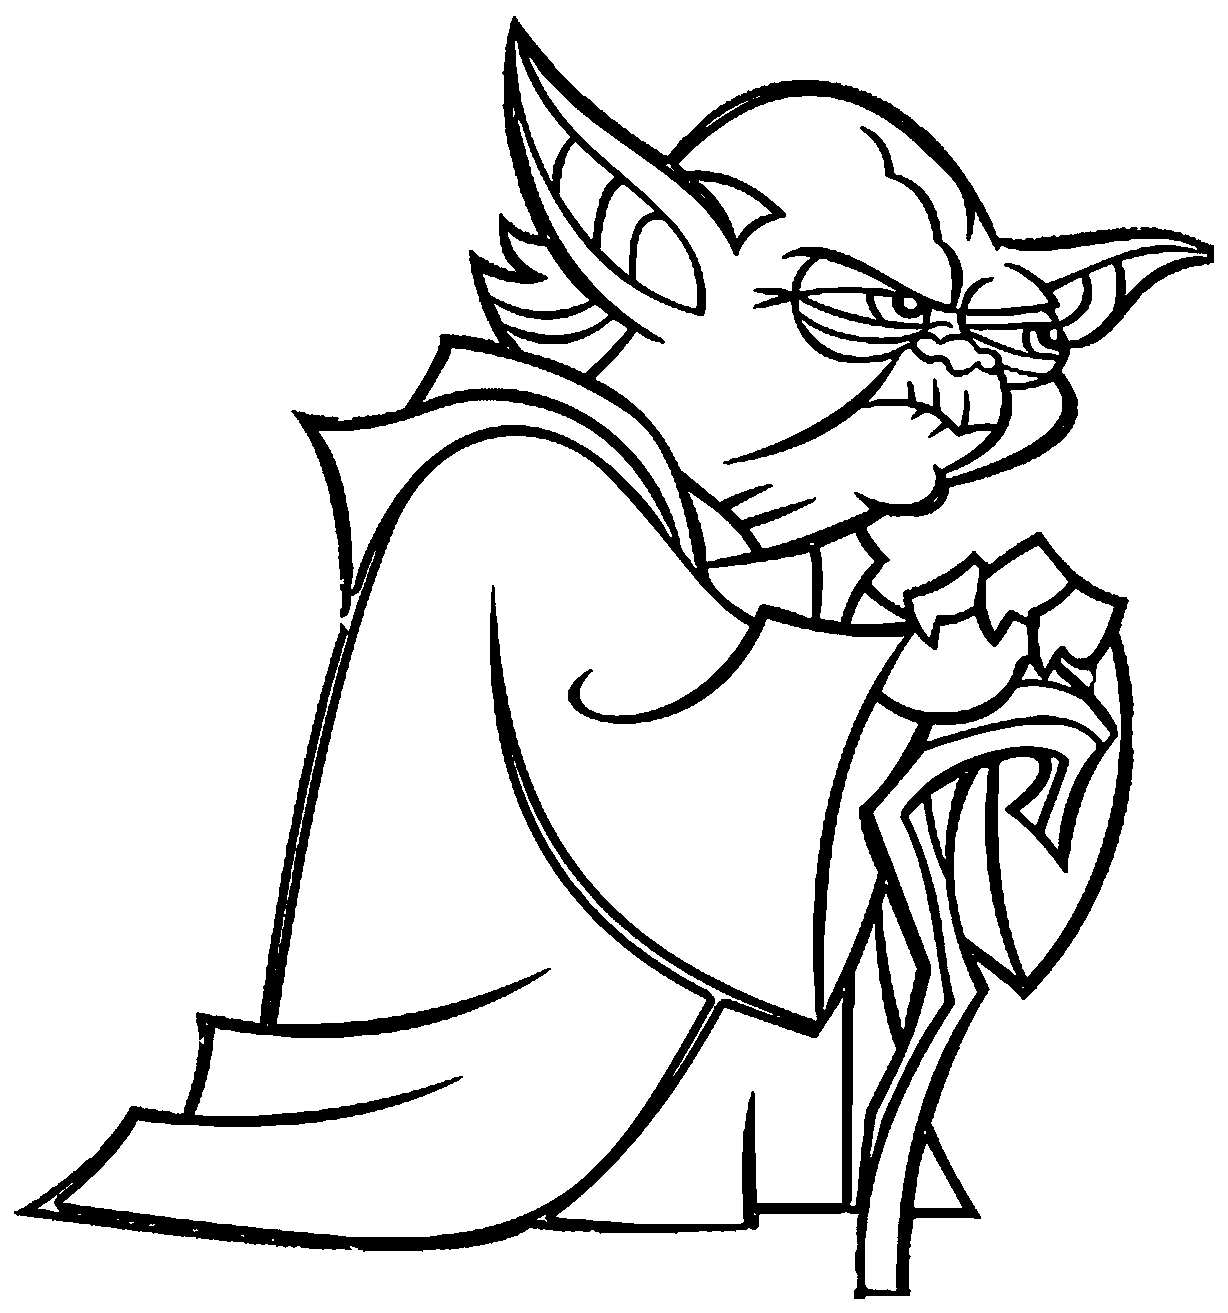 Star Wars 7 Coloring Pages